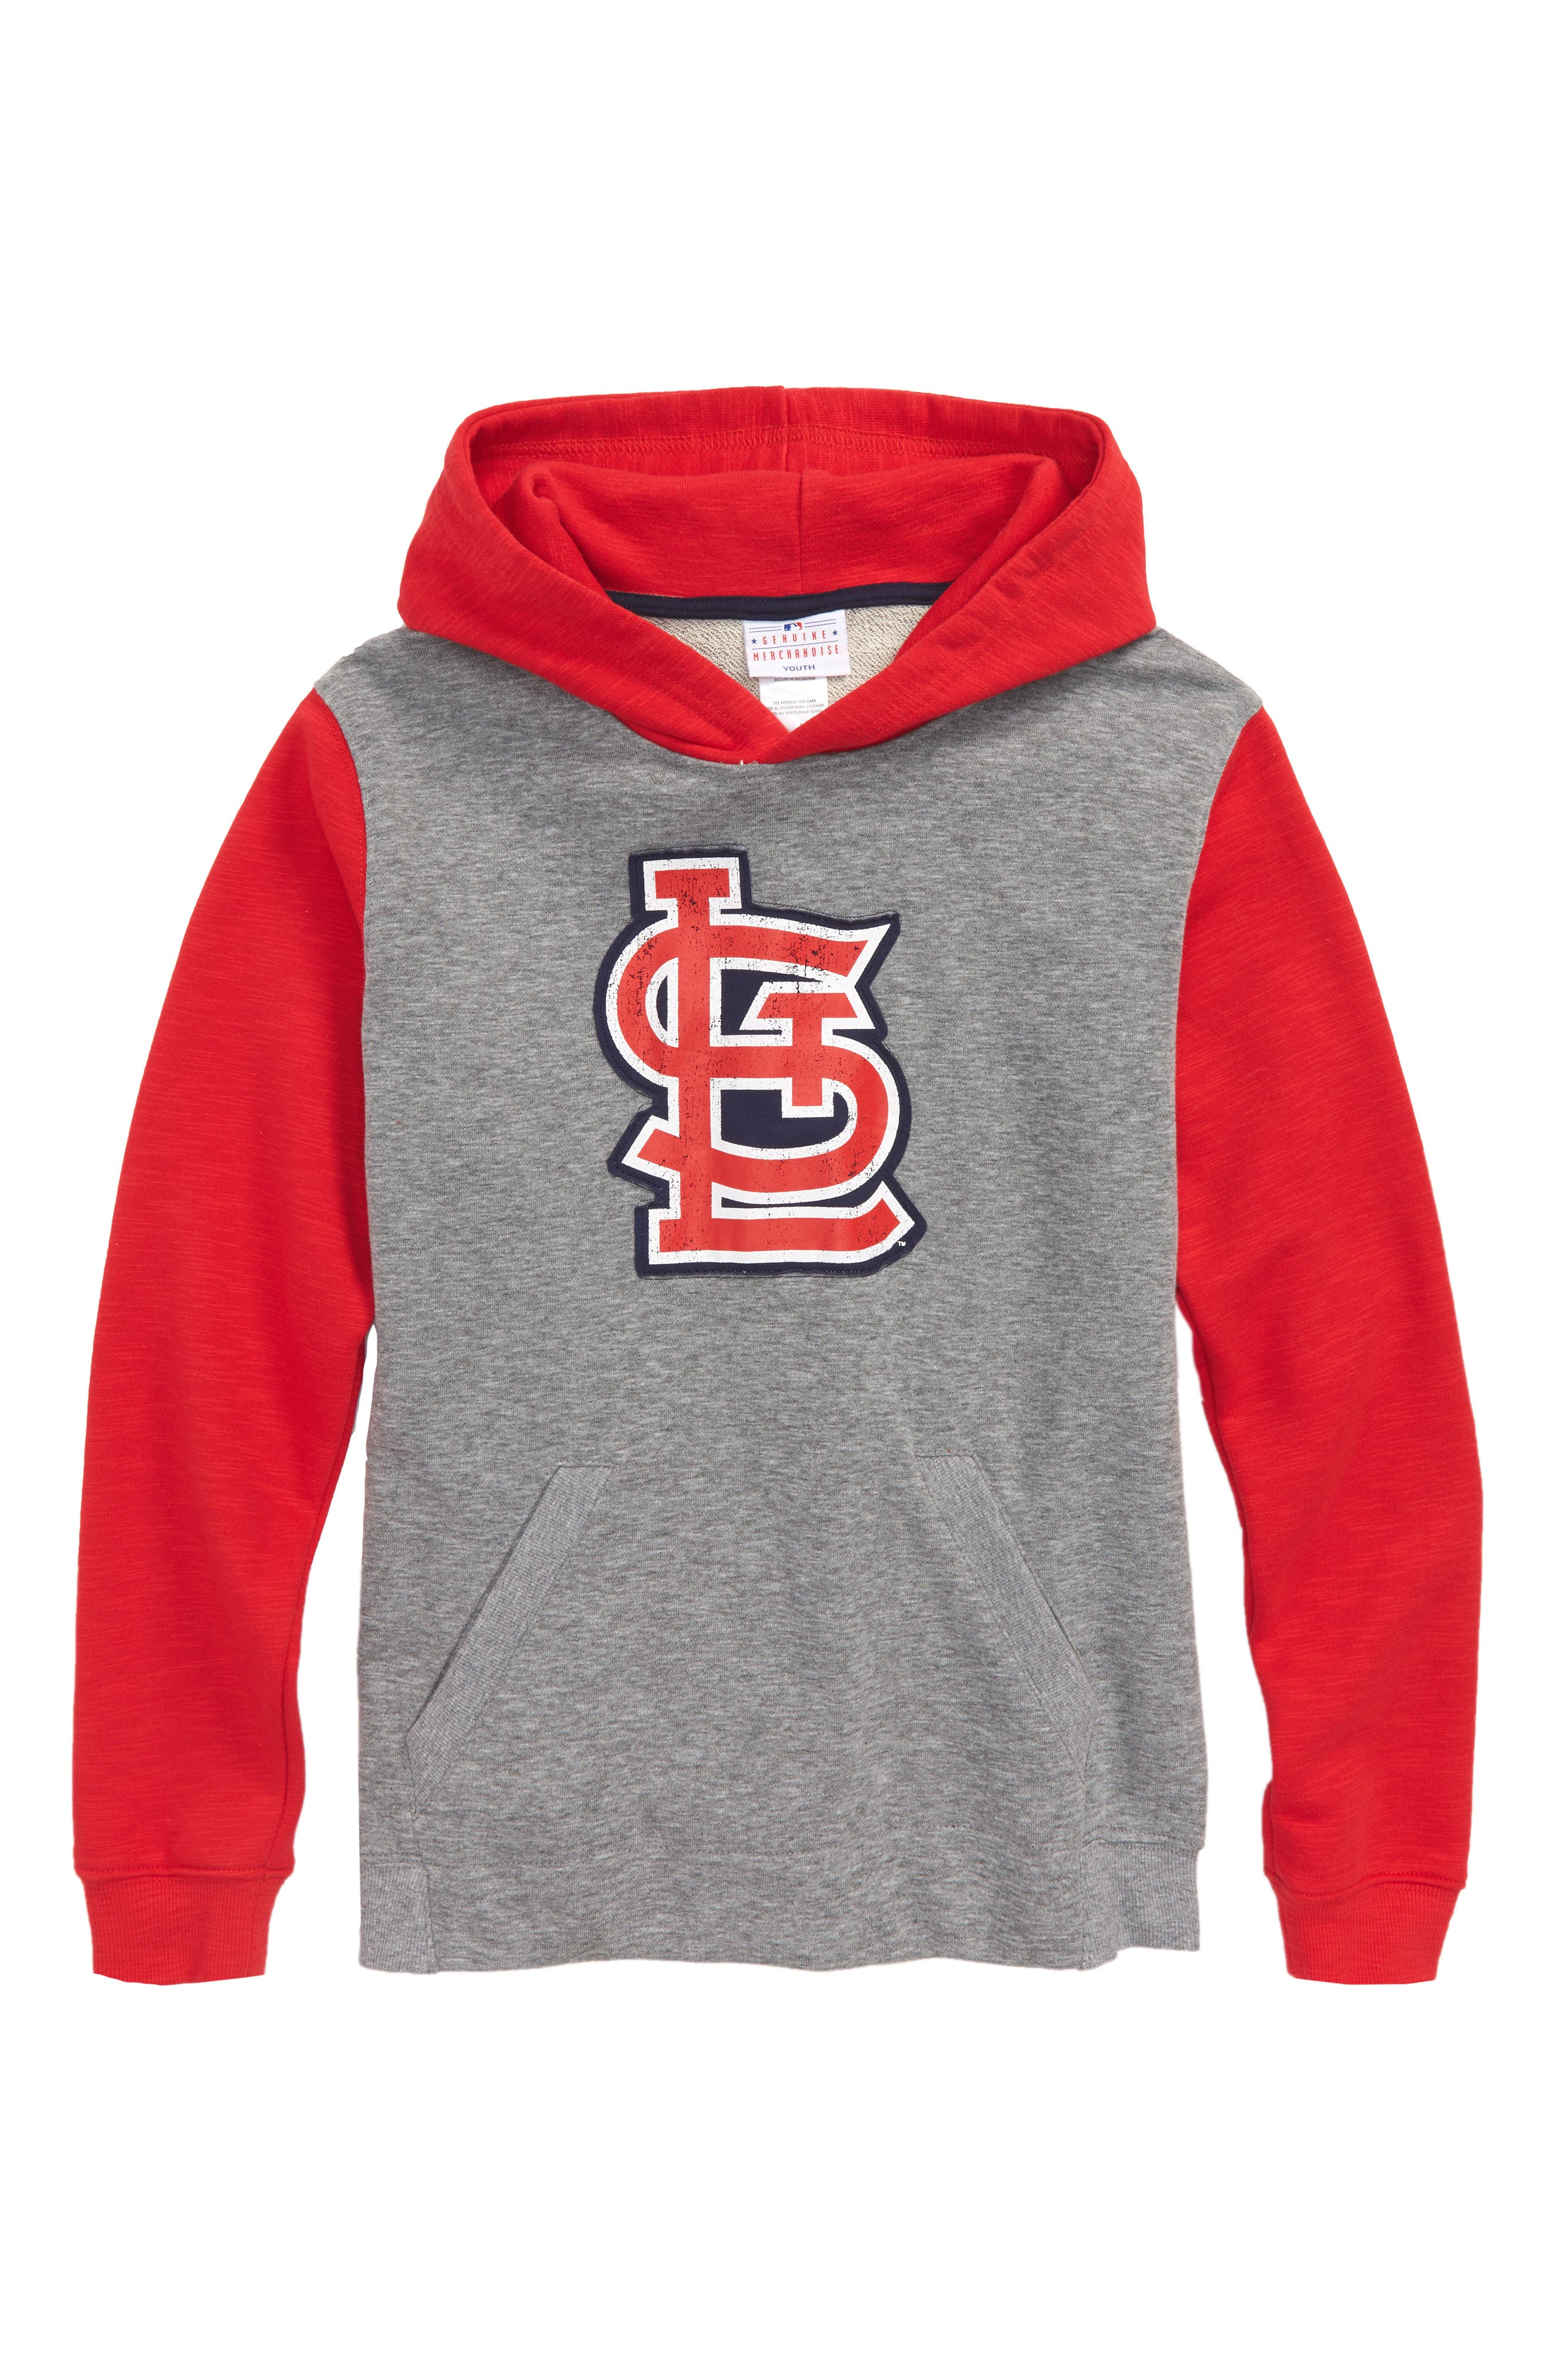 New Beginnings - St. Louis Cardinals Pullover Hoodie,                             Main thumbnail 1, color,                             Gray